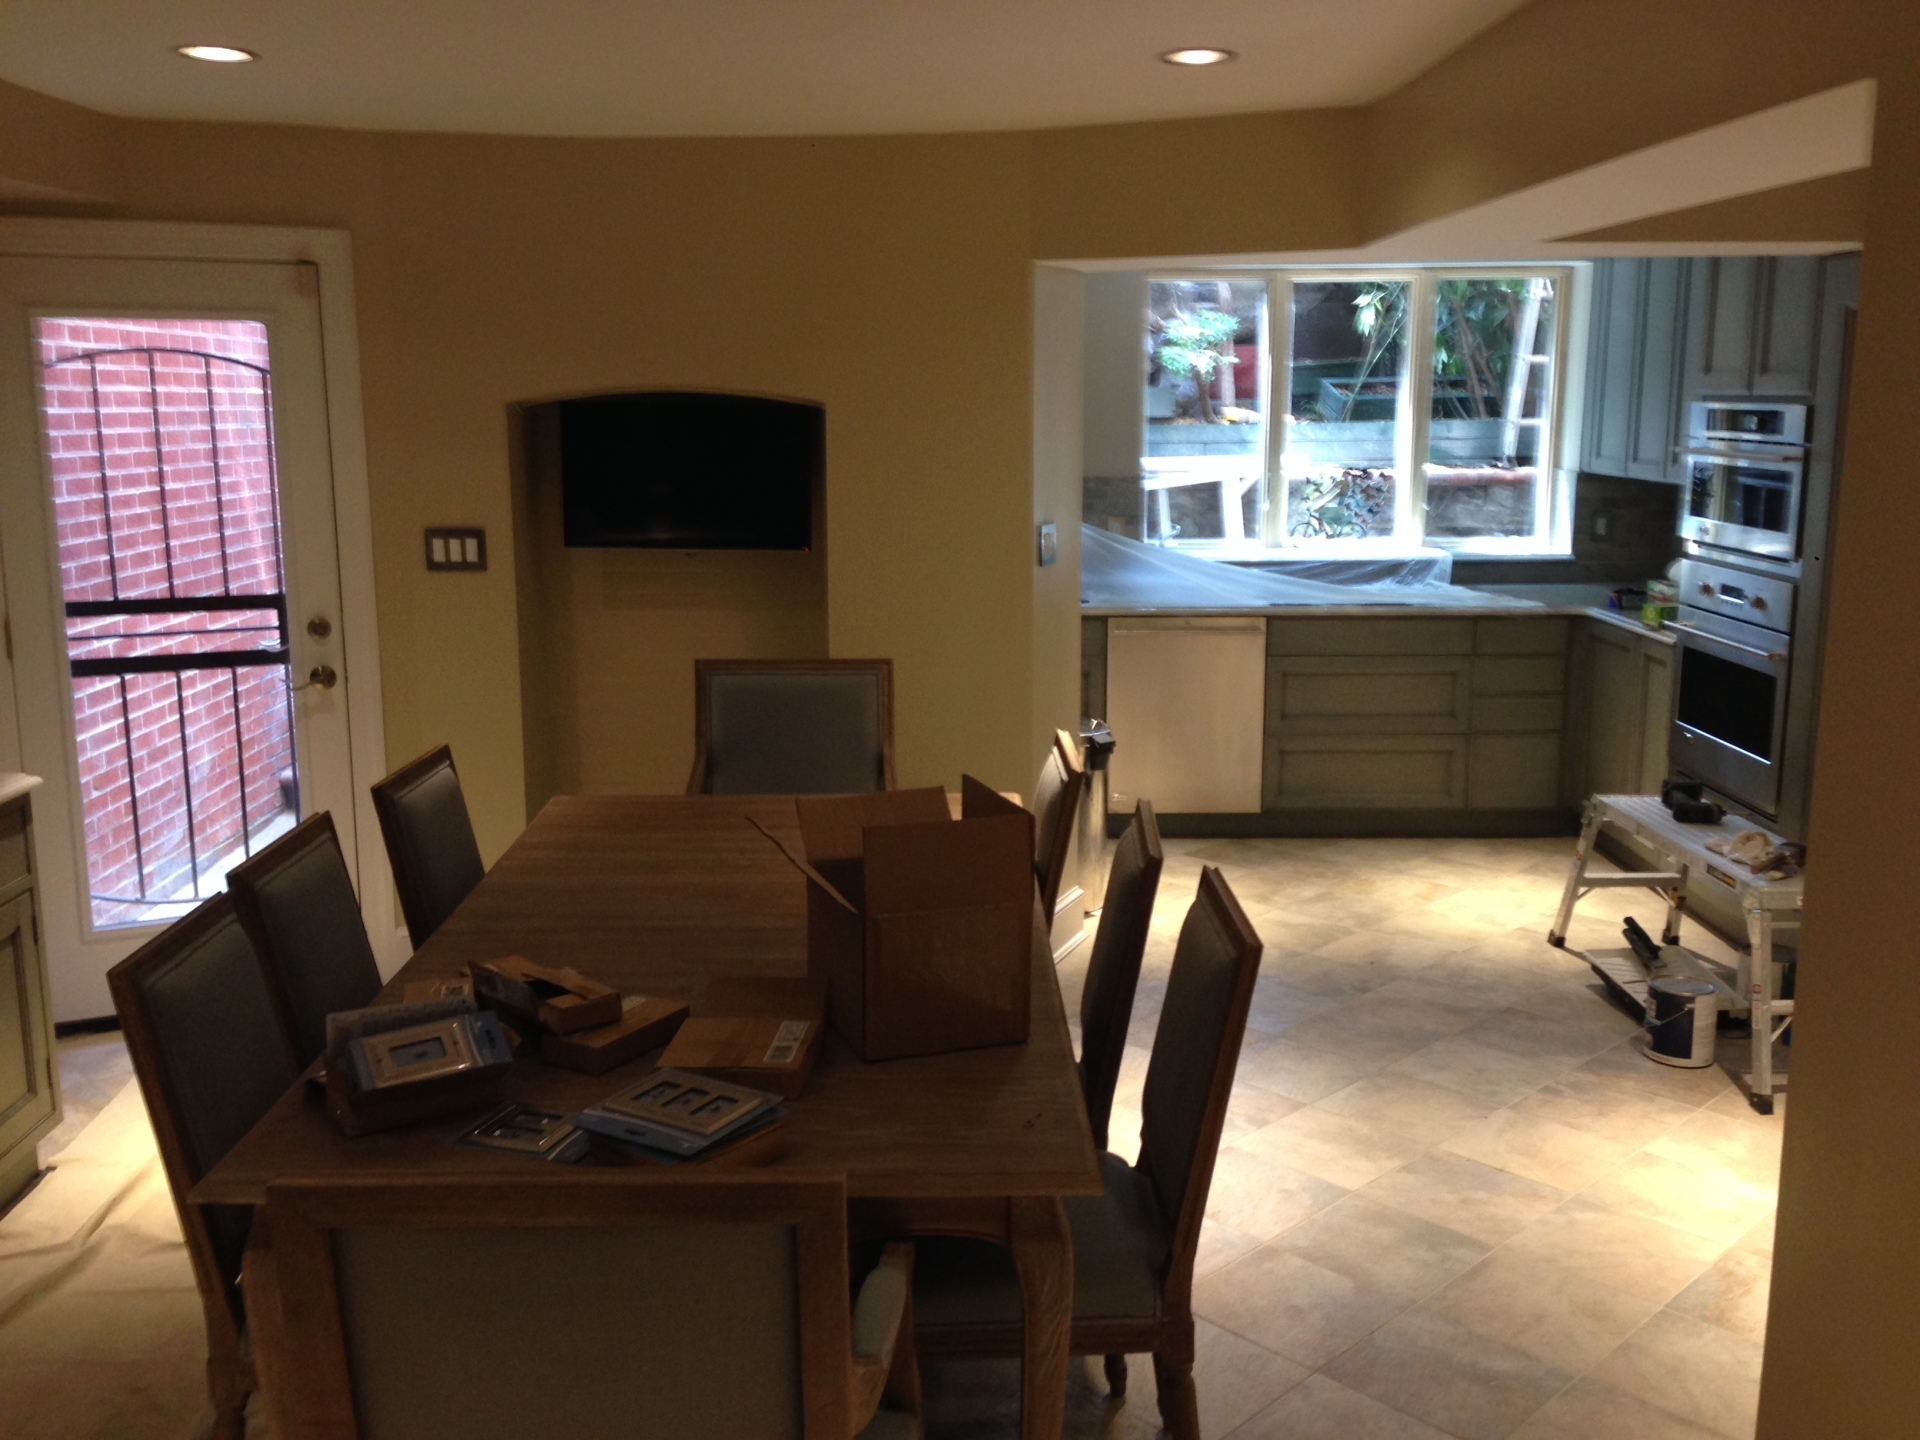 Completed Kitchen And Dining Room